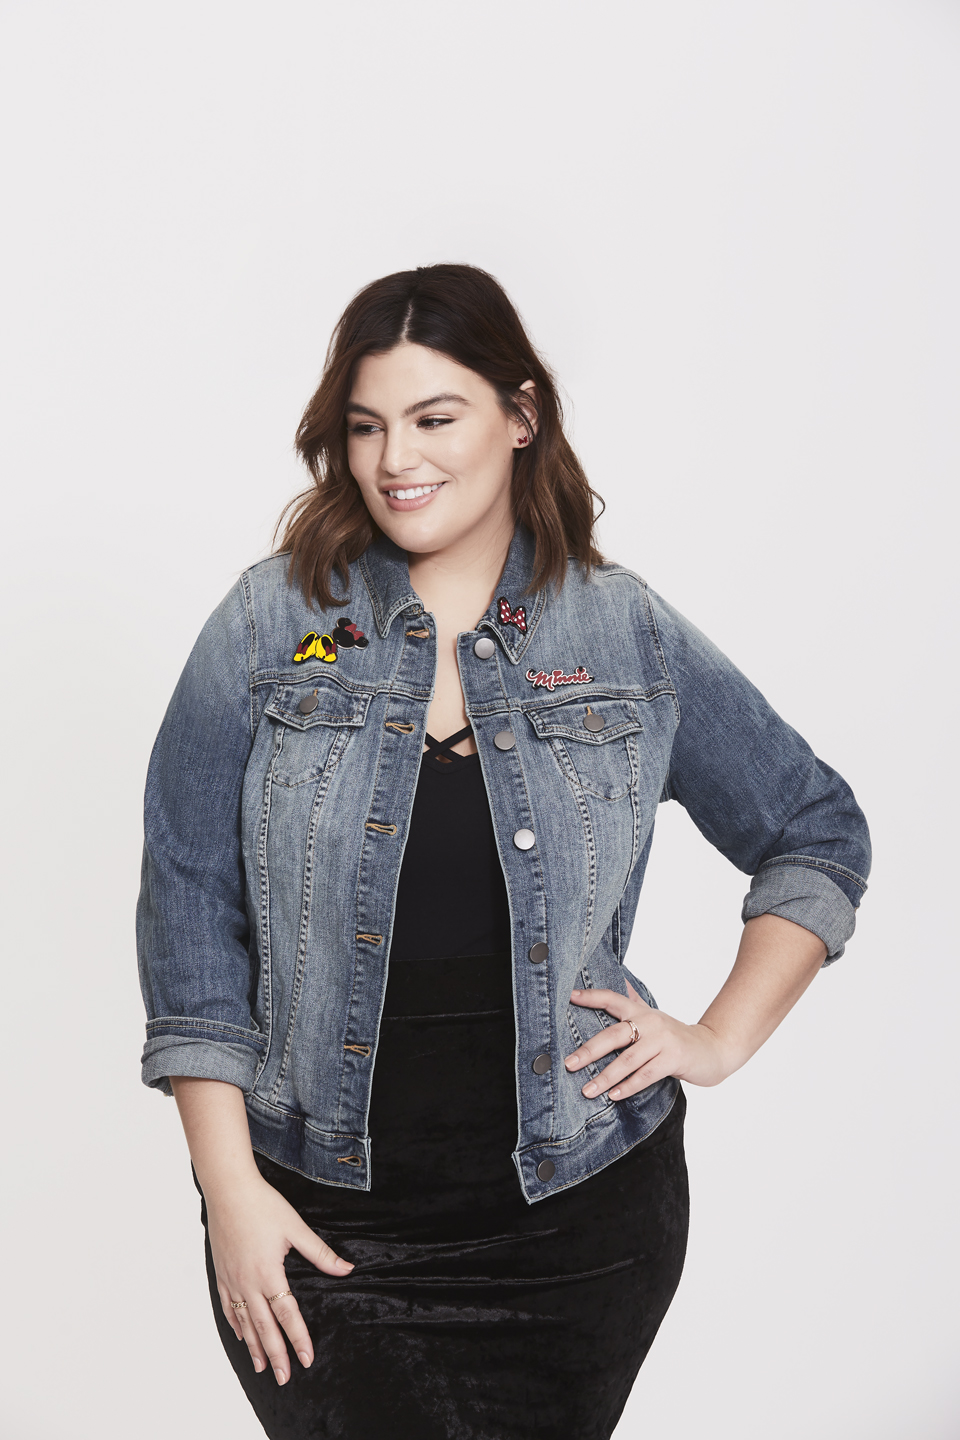 a69061de1eb Torrid released a Minnie Mouse-inspired fashion collection ...